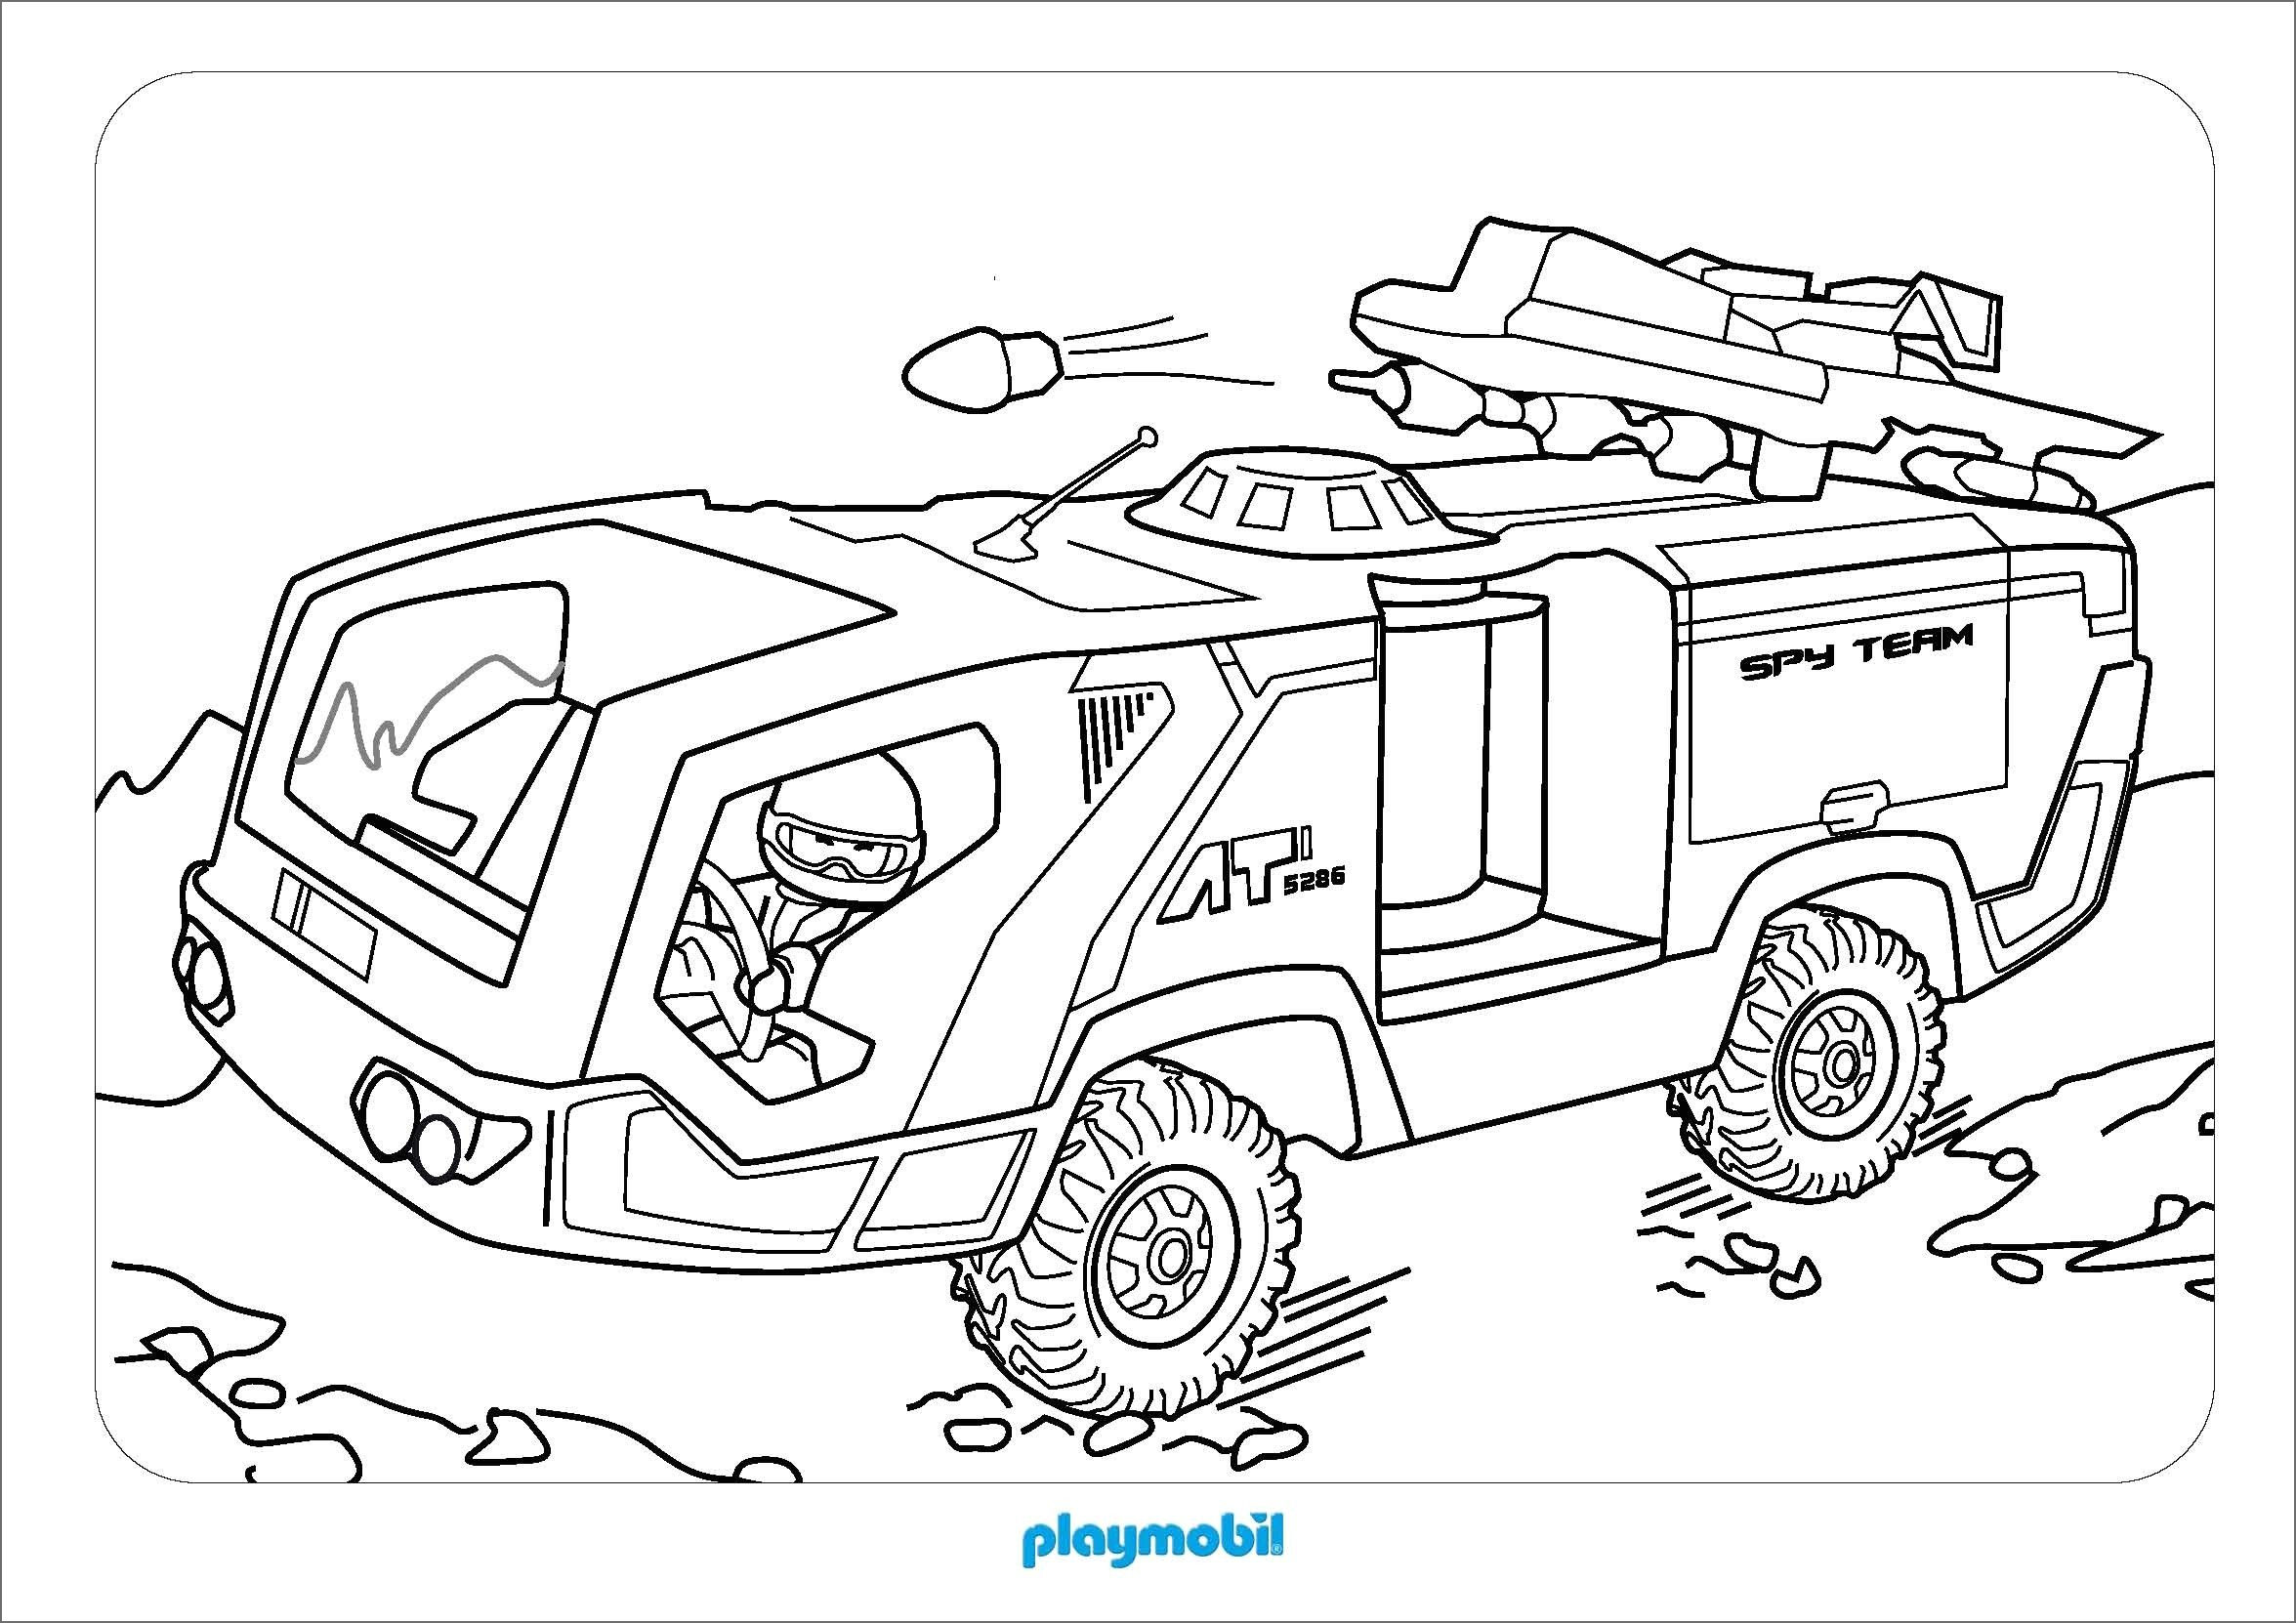 Charmant Coloriage Police Playmobil 29 Avec supplémentaire Coloriage Pages for Coloriage Police Playmobil